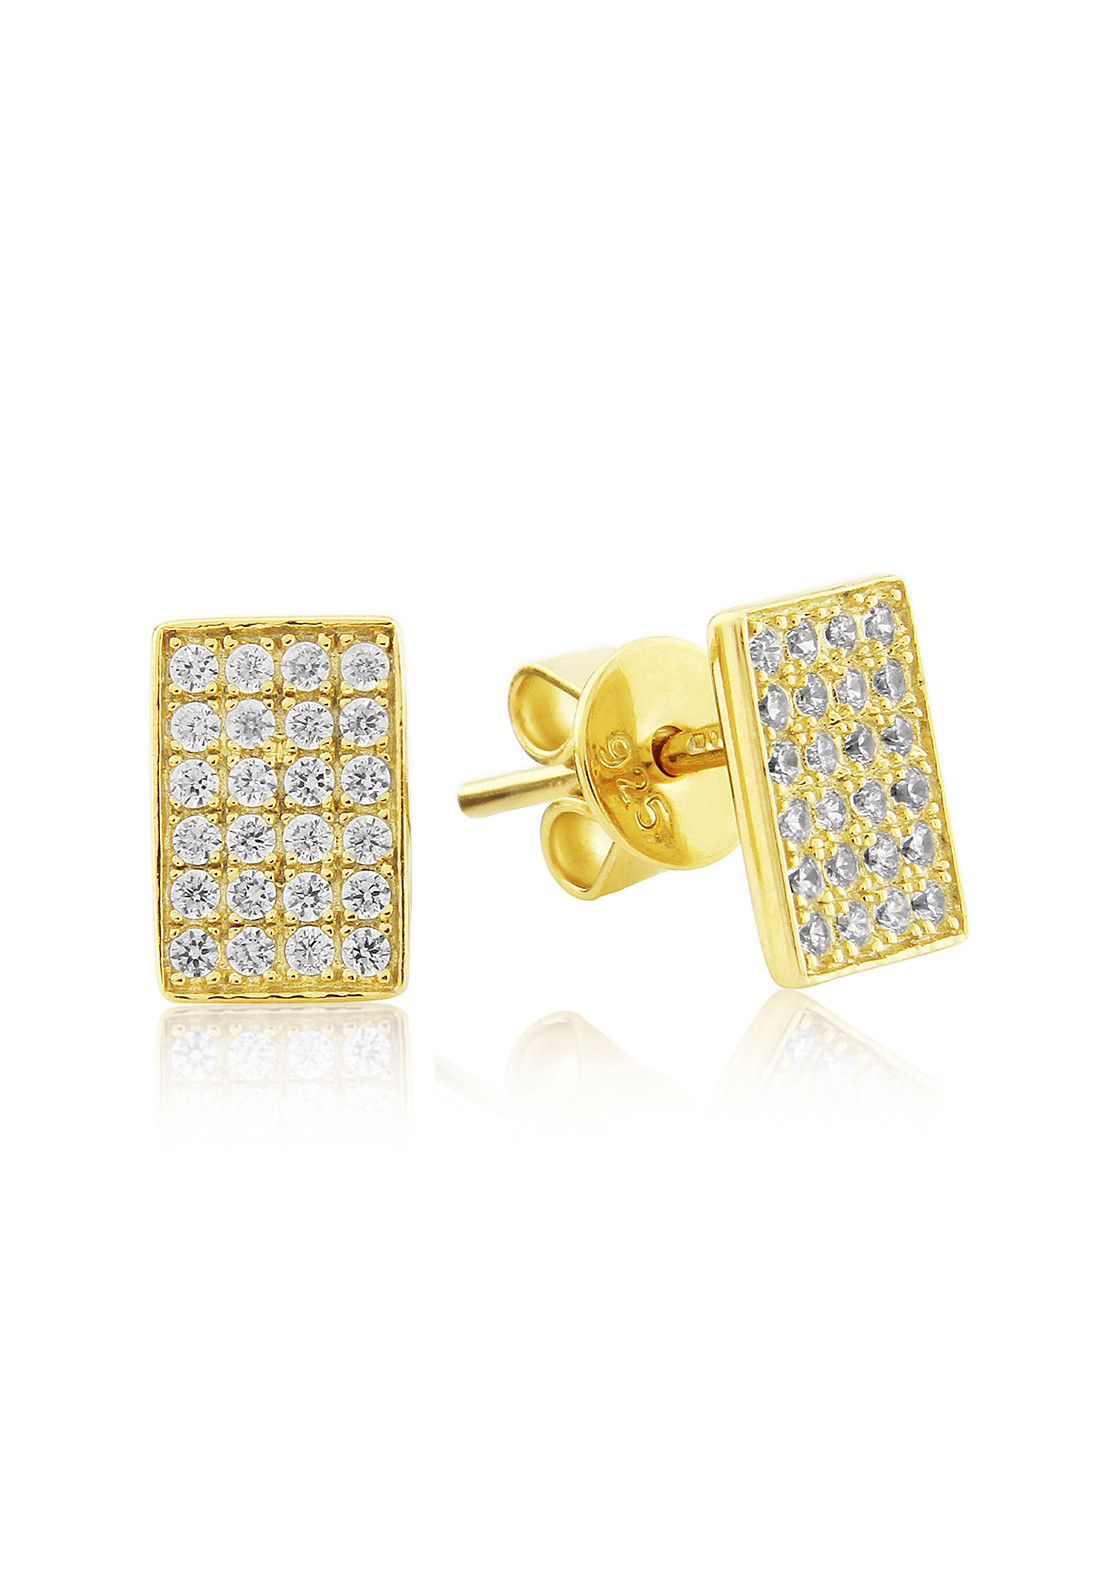 Waterford Crystal Pave Rectangular Stud Earrings, Gold